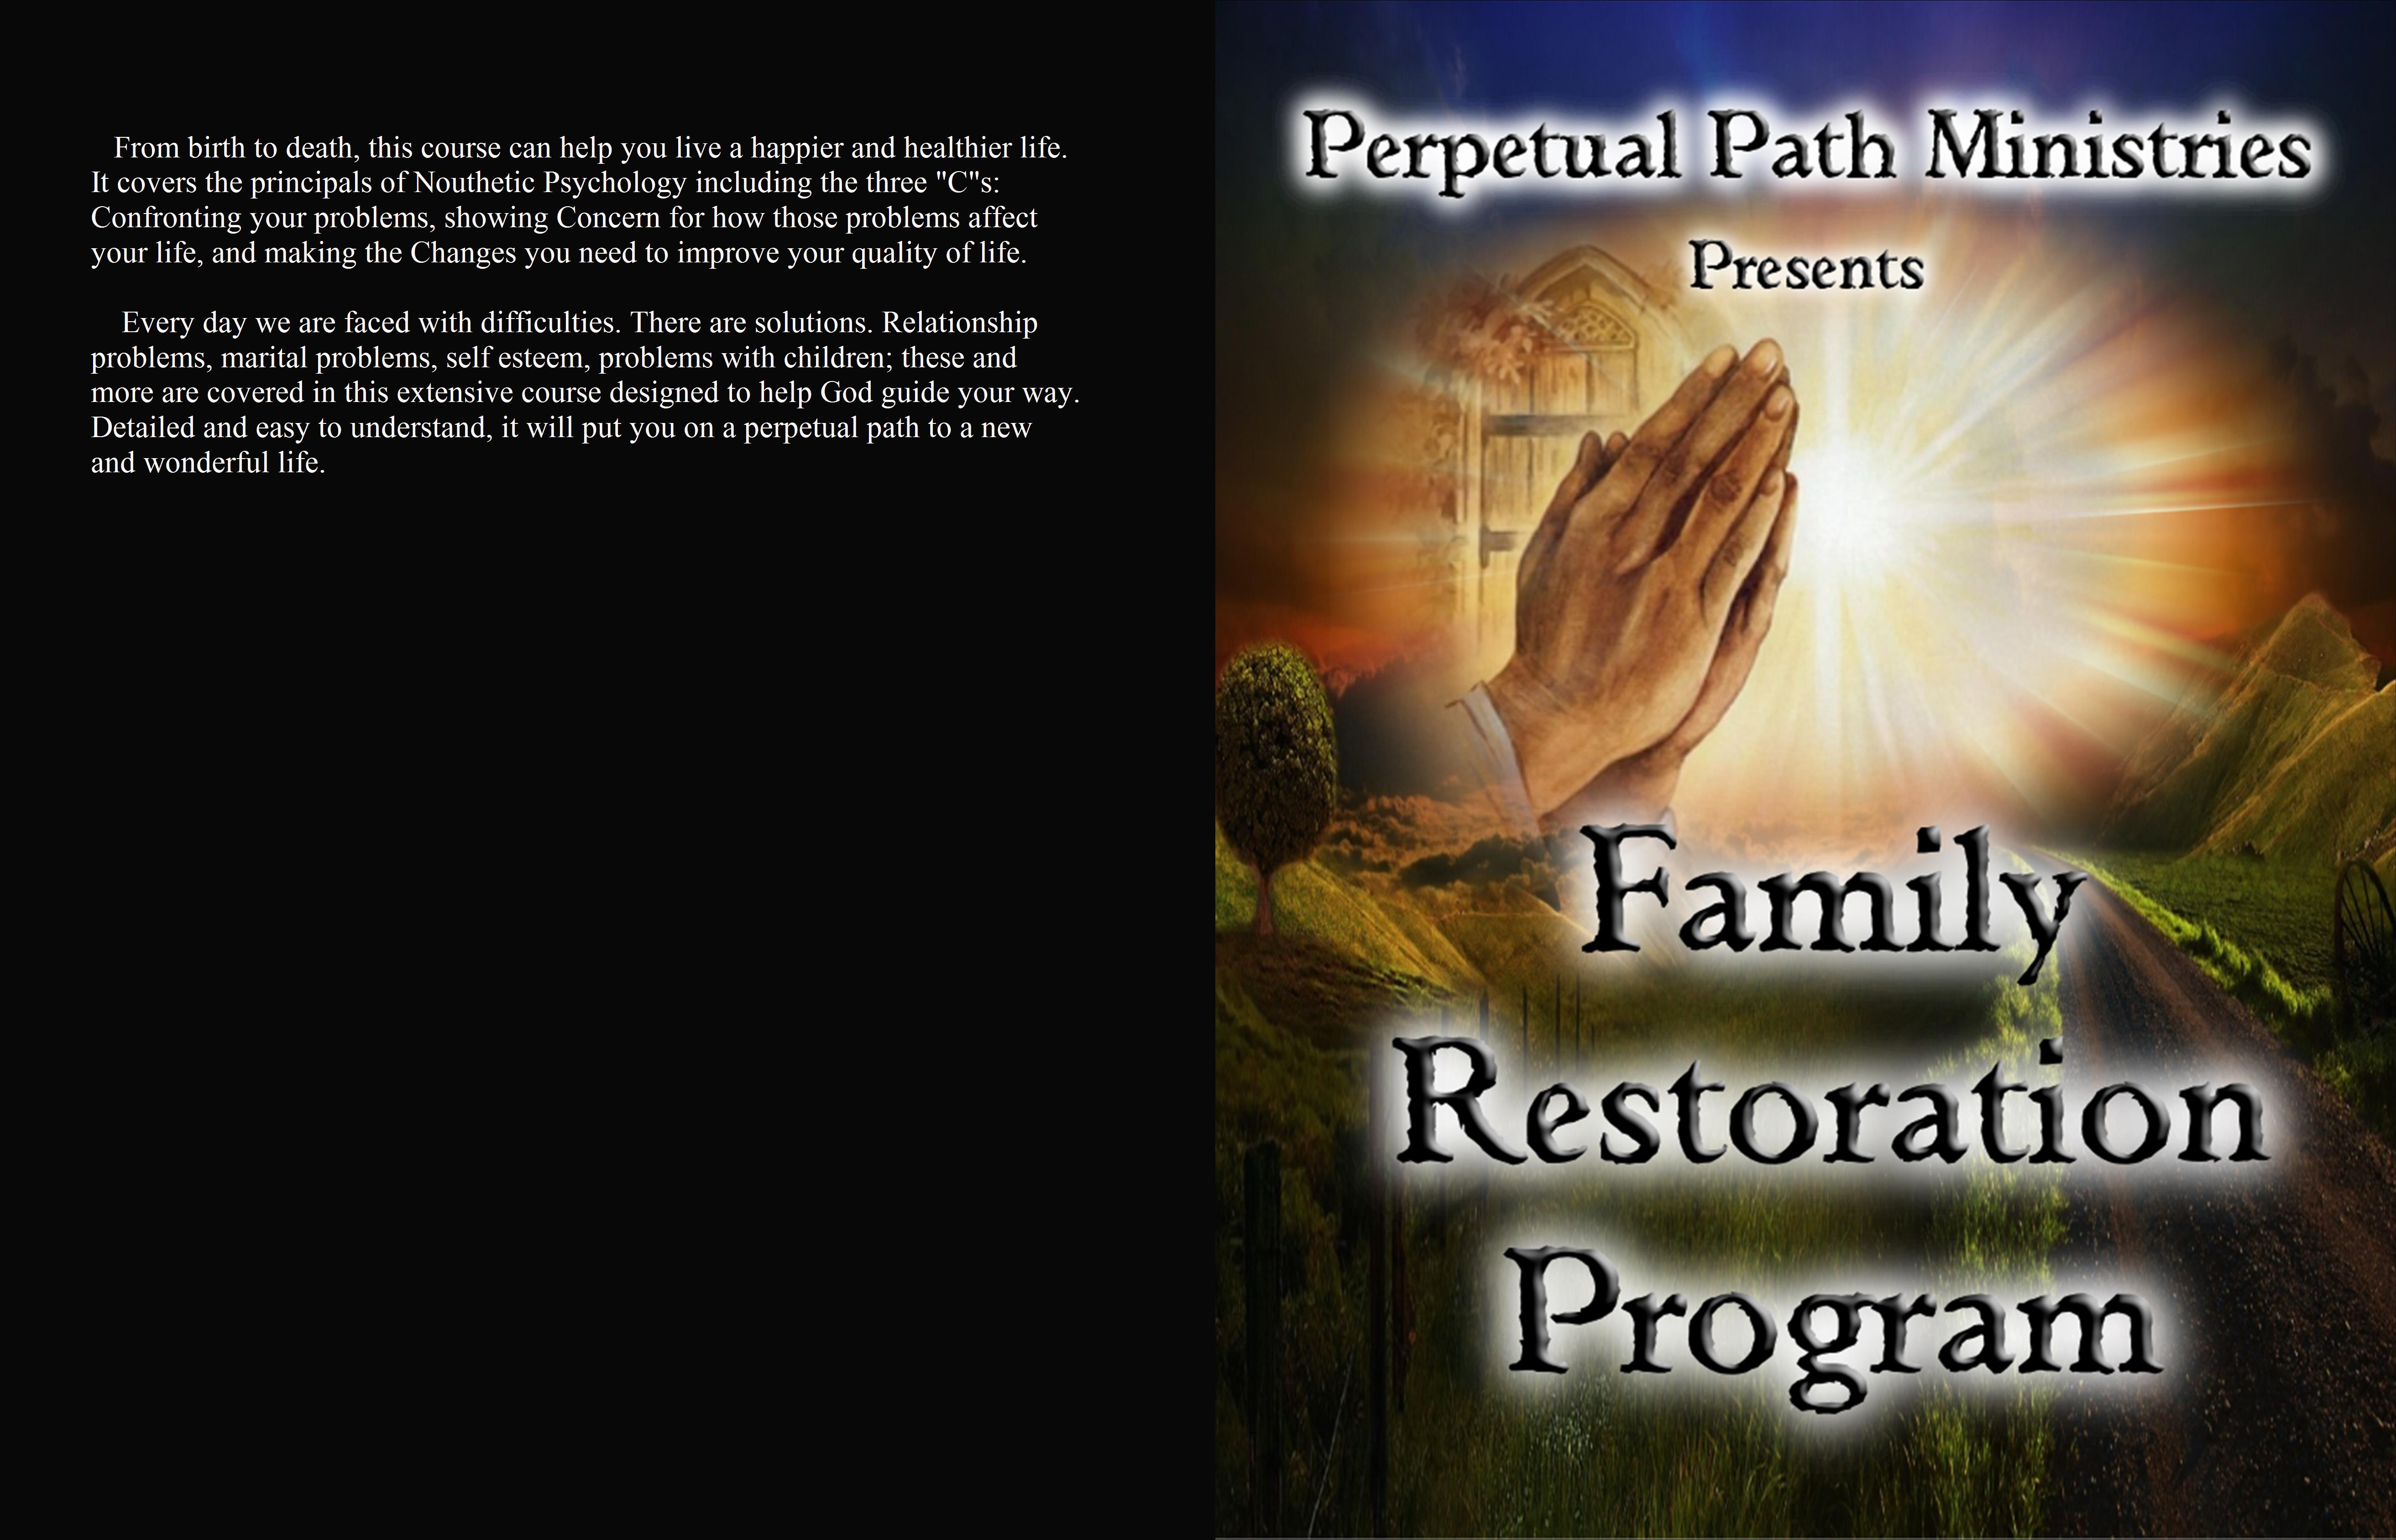 Perpetual Path Ministries Family Restoration Program cover image